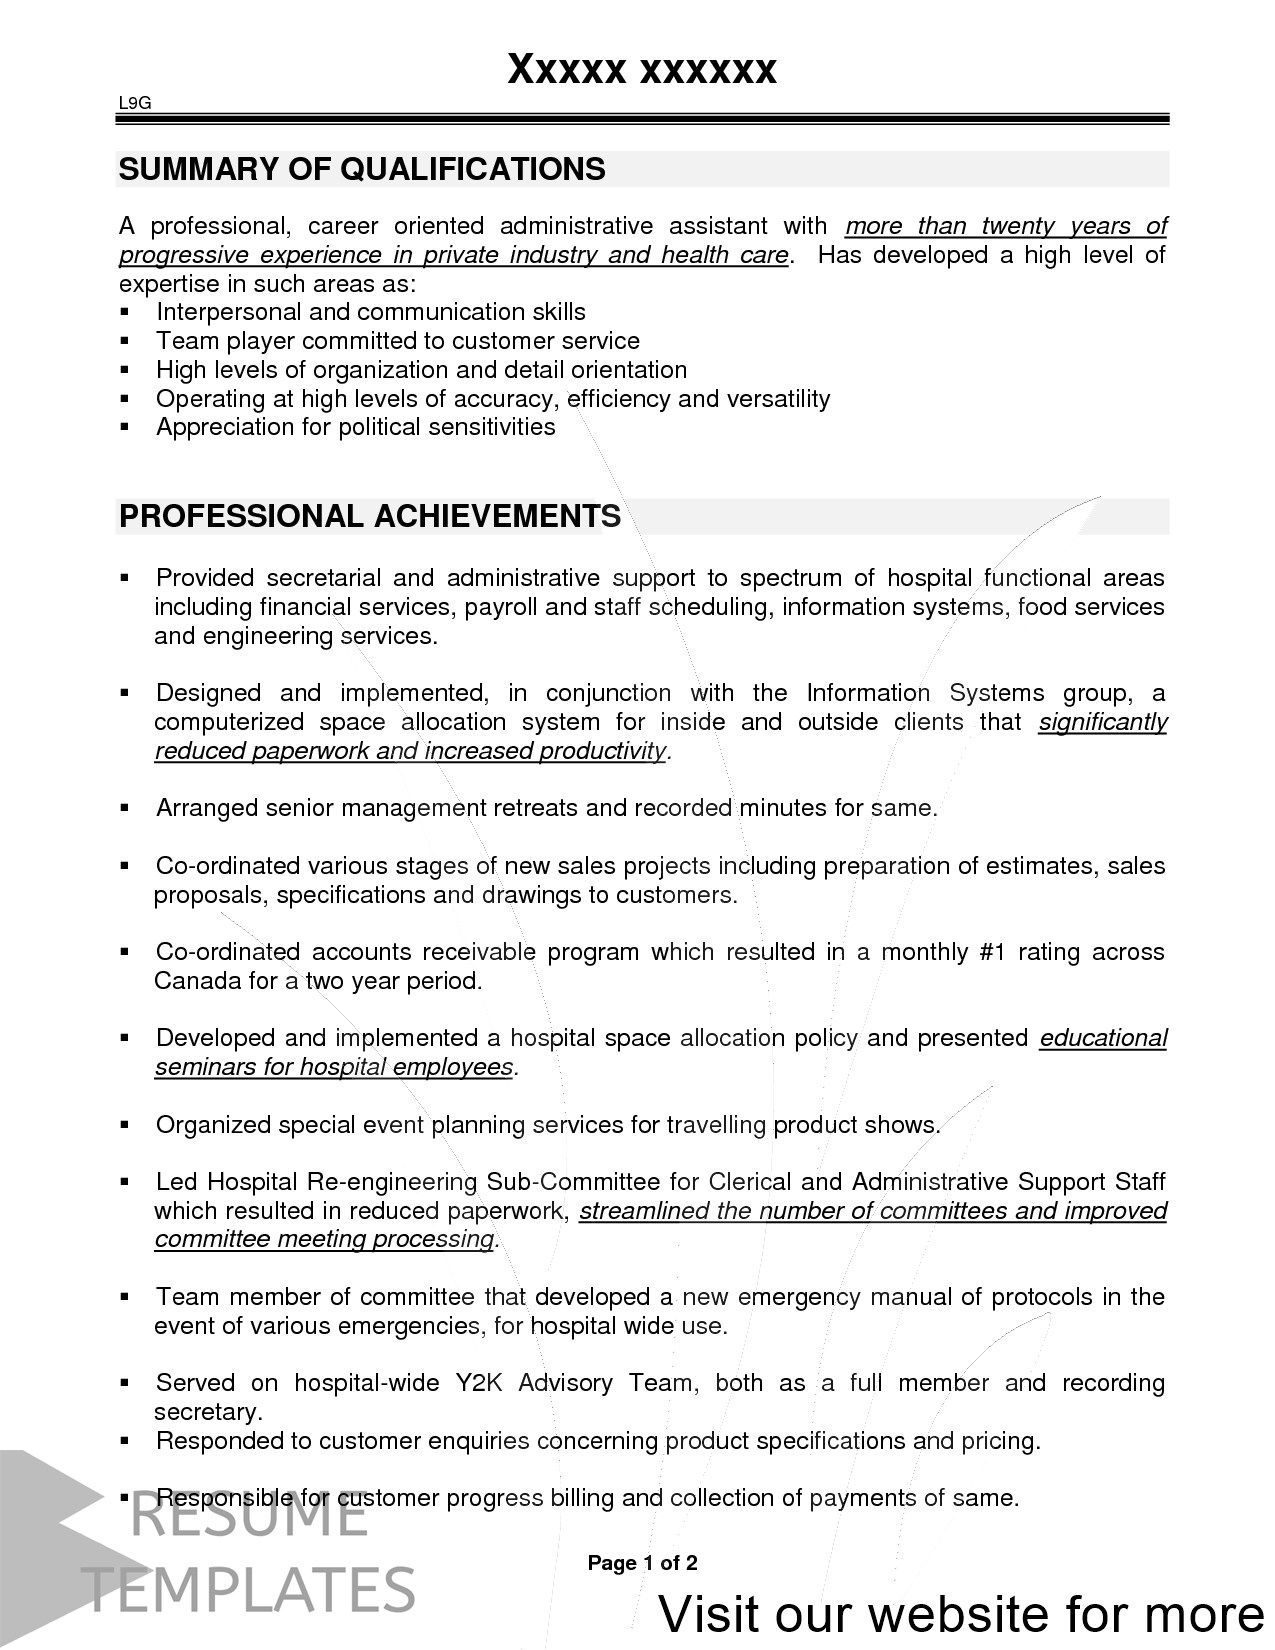 college resume template free in 2020 College resume